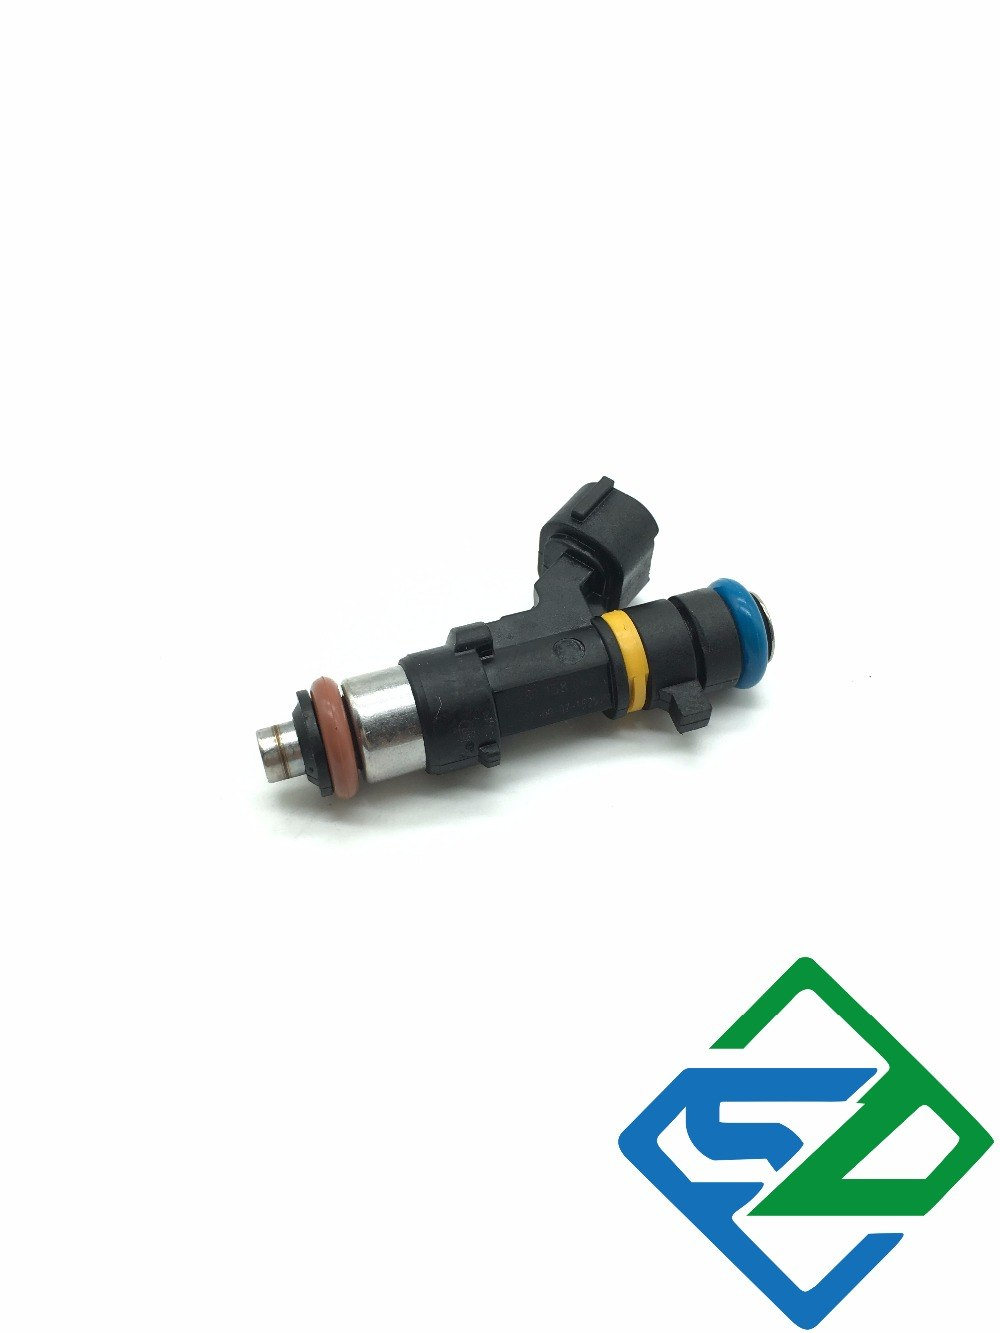 Fuel Injector Nozzle For Nissan Quest Maxima Altima 3.5L V6 OEM:16600-CD700 16600CD700 16600 CD700 0280158042 028 0158 042